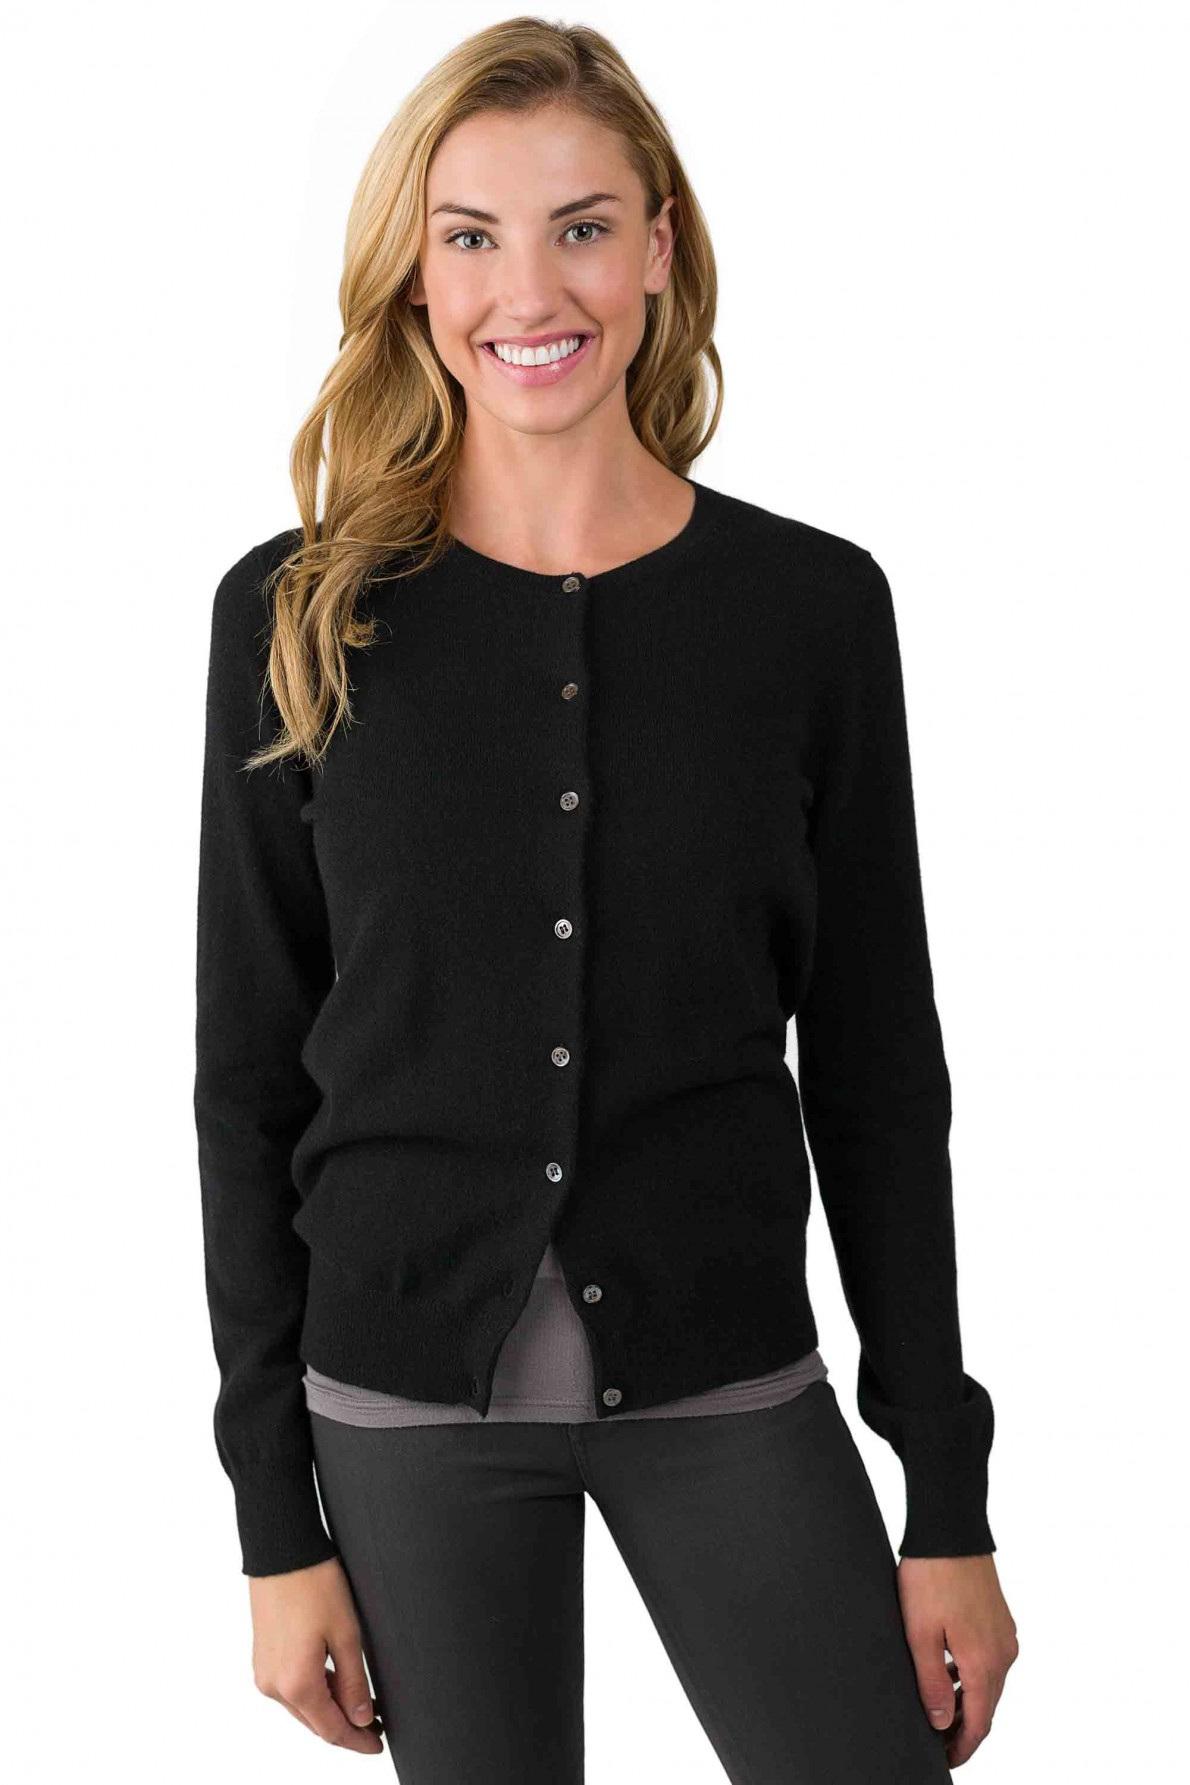 cashmere cardigan black cashmere button front cardigan sweater right front view bfpoghs